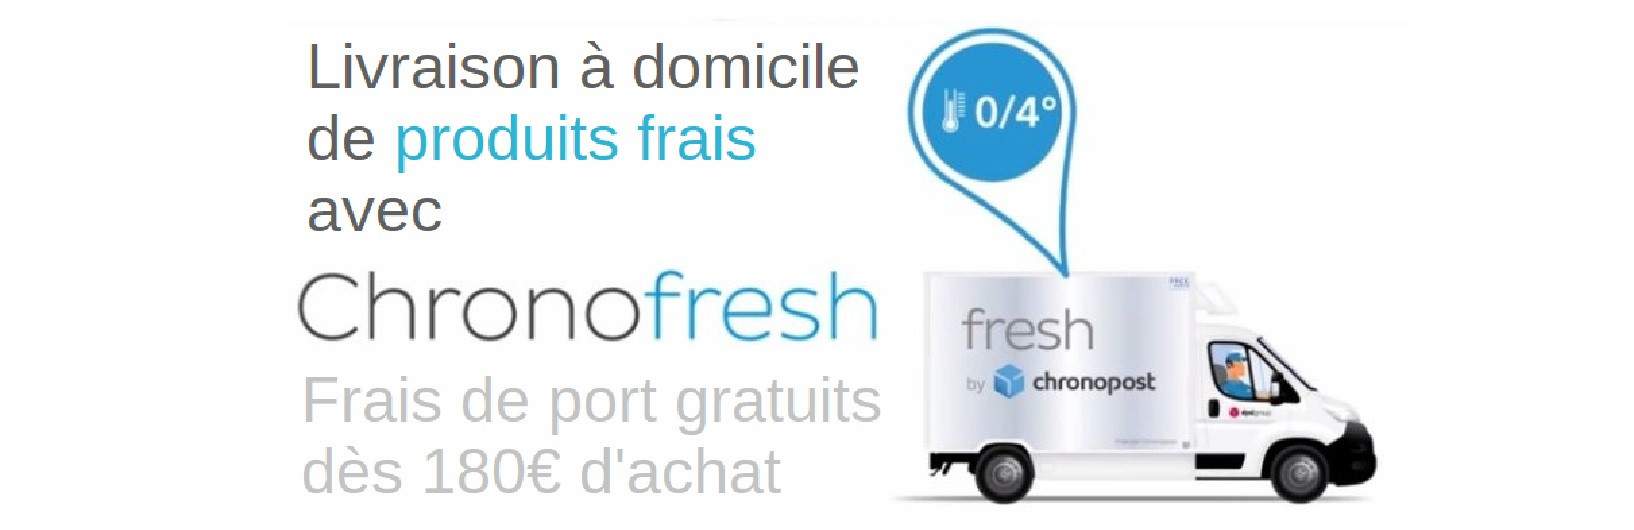 Chronofresh uniquement